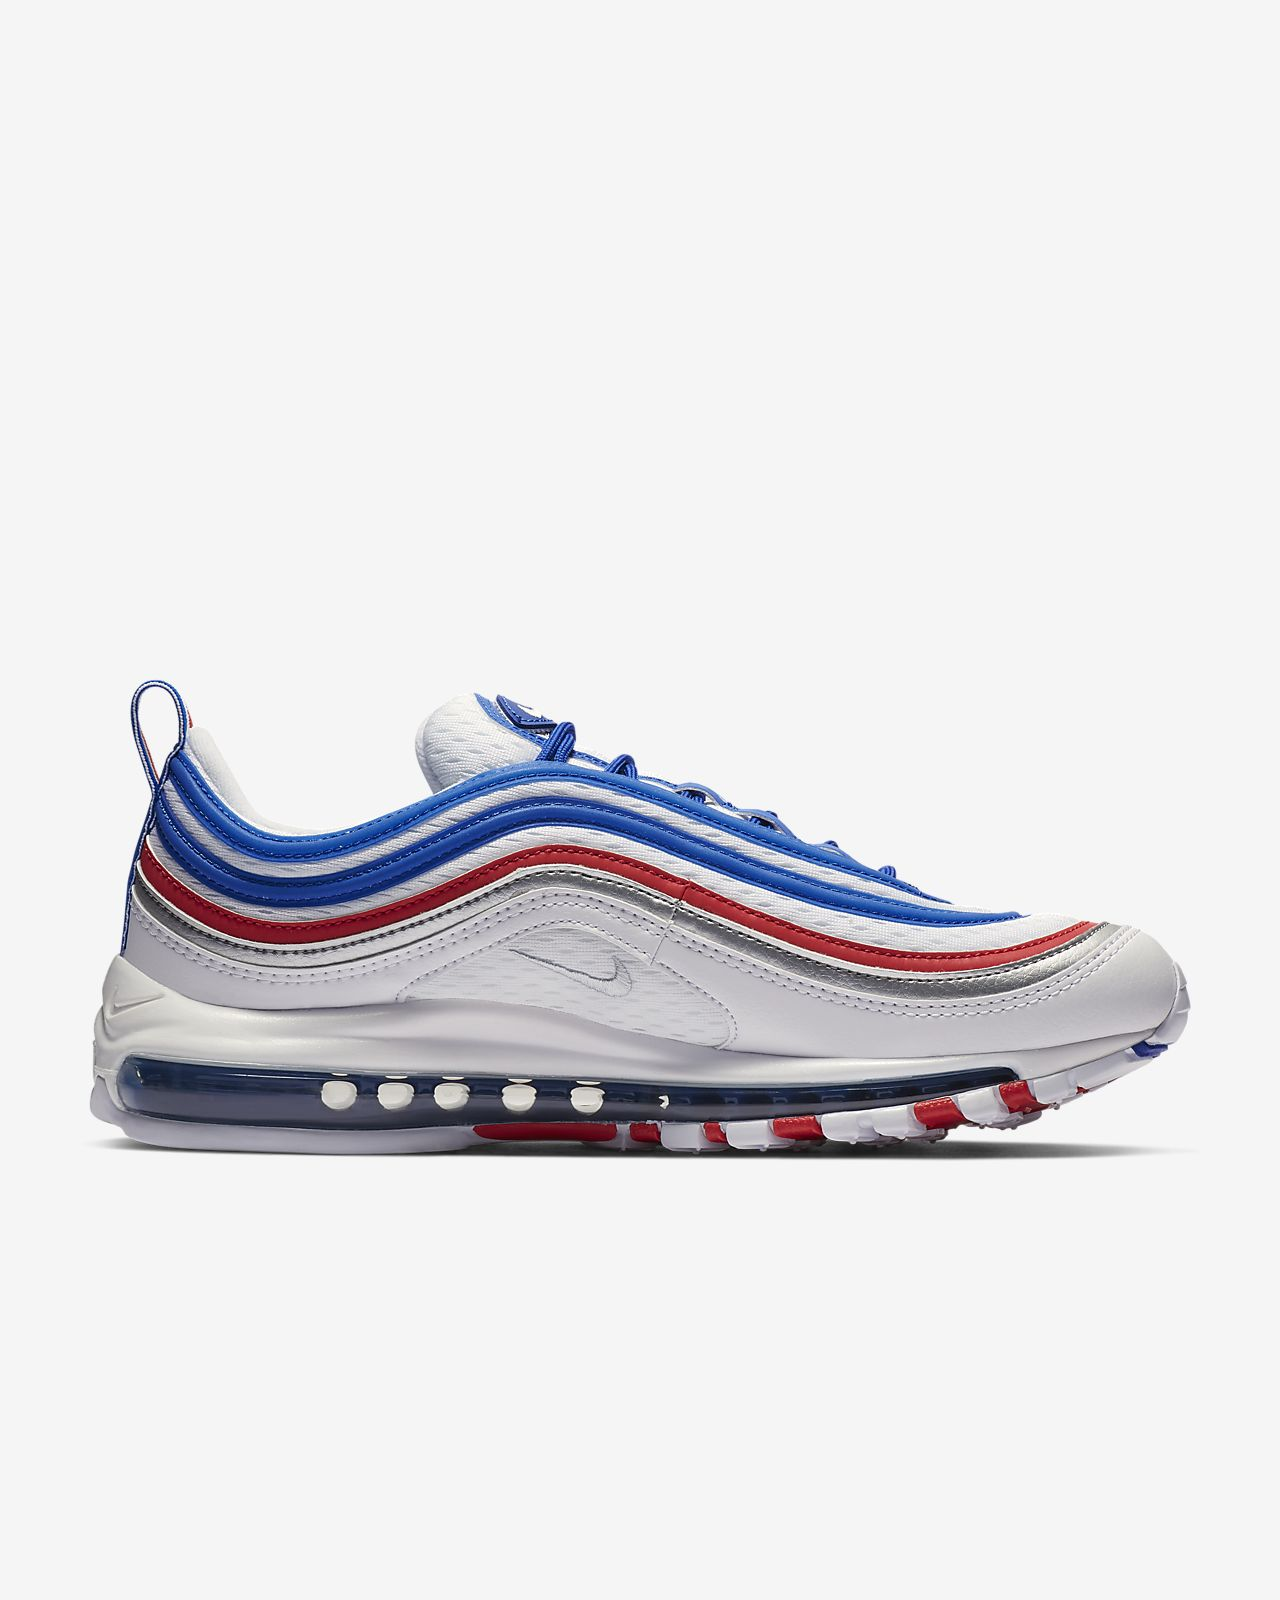 quality design c55c2 548f7 ... Chaussure Nike Air Max 97 pour Homme